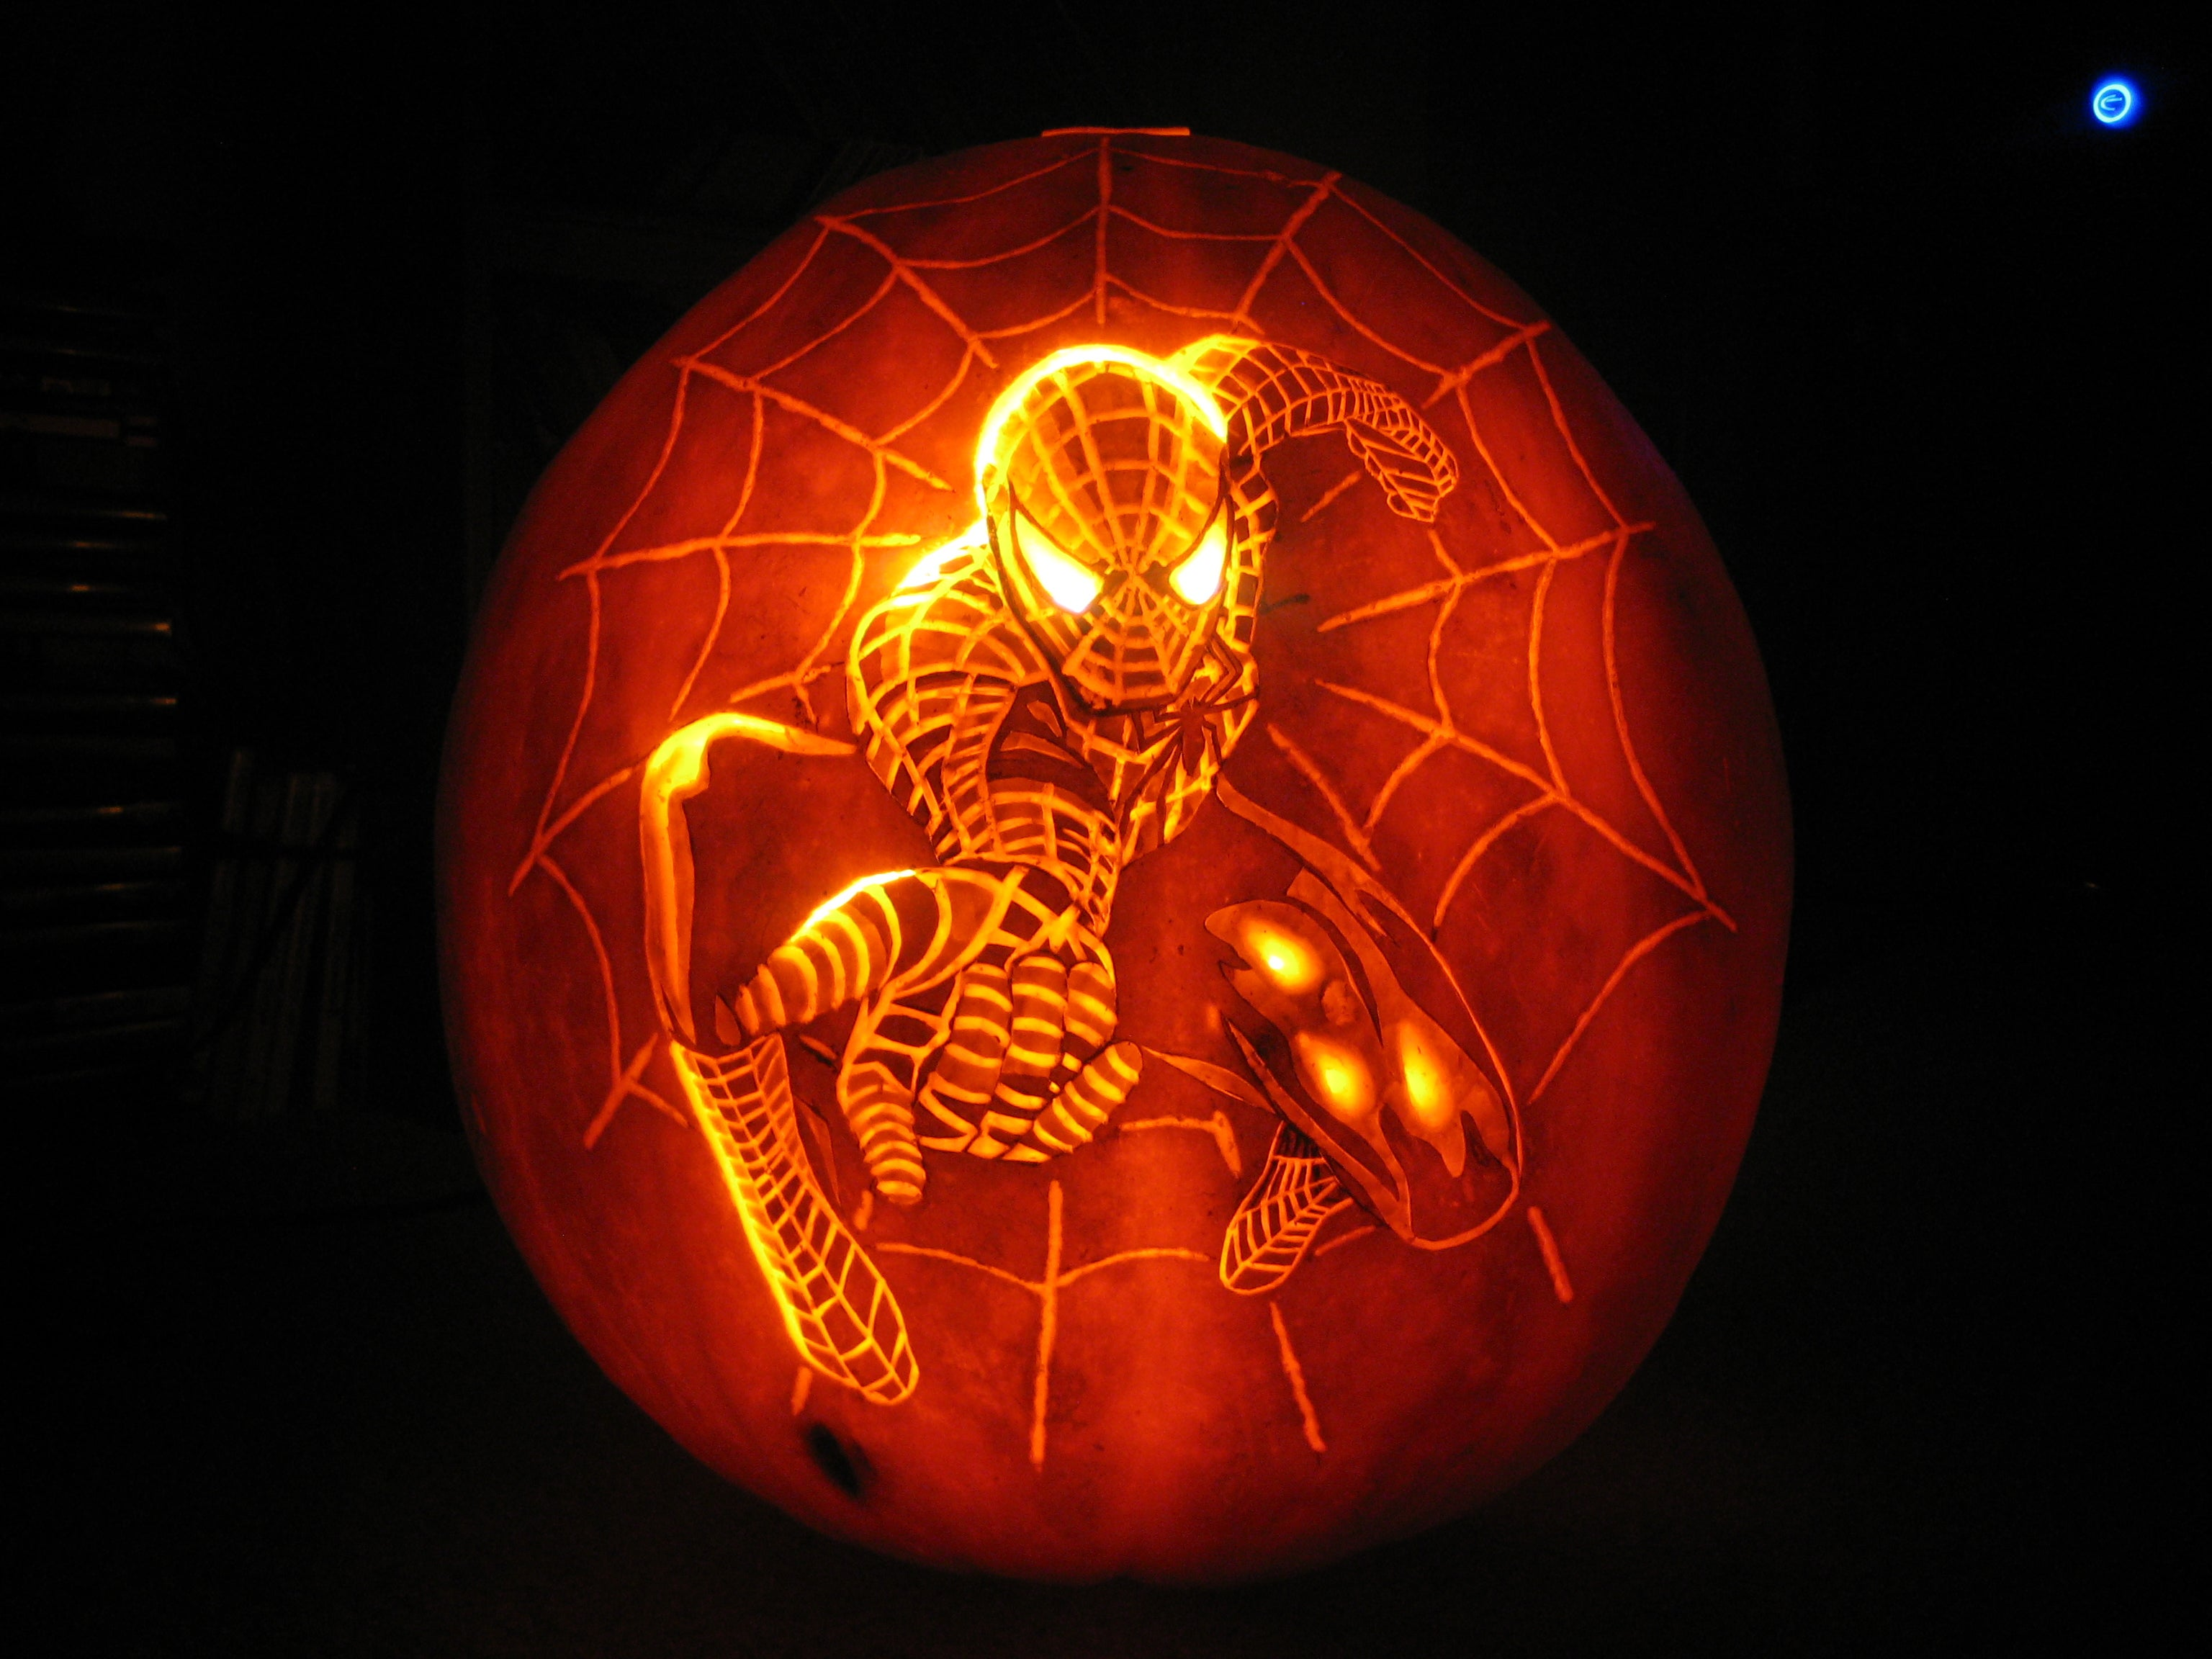 How To Carve Spiderman 9 Steps With Pictures Instructables